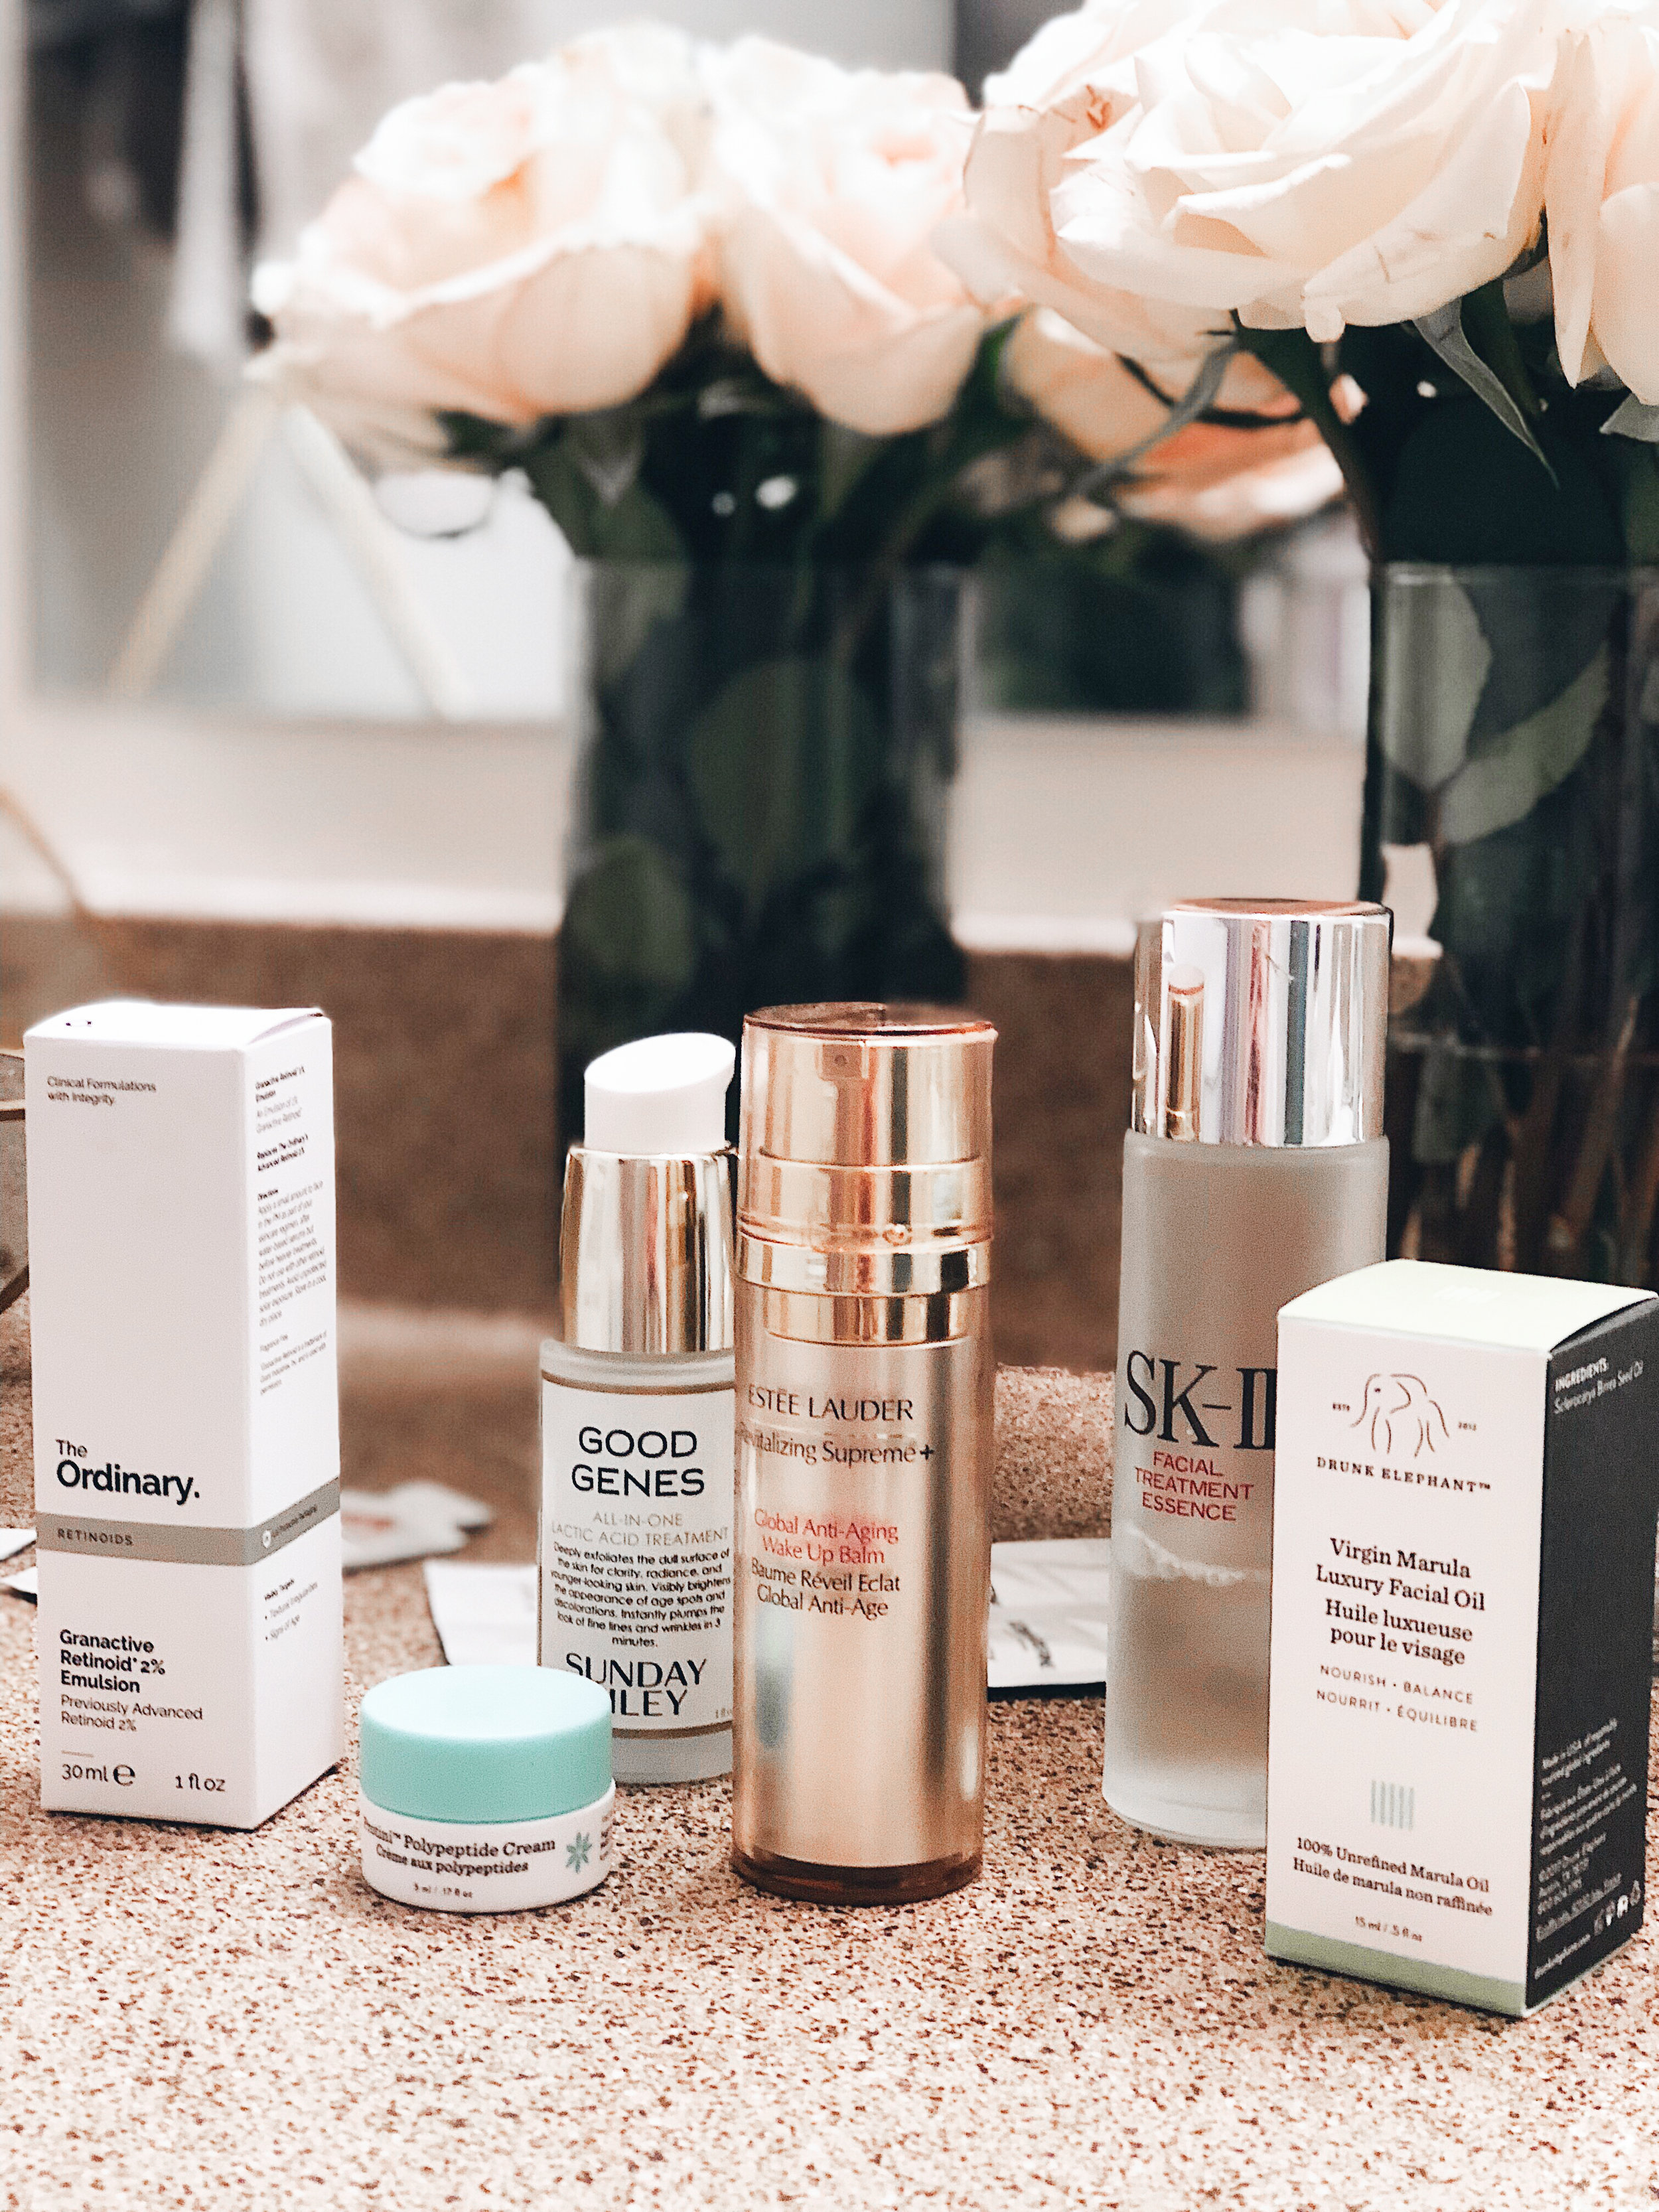 The Ordinary Granactive Retinoid 2% Emulsion  |  Drunk Elephant Protini Polypeptide Cream  |  Sunday Riley Good Genes  |  Estee Lauder Global Anti-Aging Wake Up Balm  |  Sk-II Facial Treatment Essence  |  Drunk Elephant Virgin Marula Luxury Facial Oil